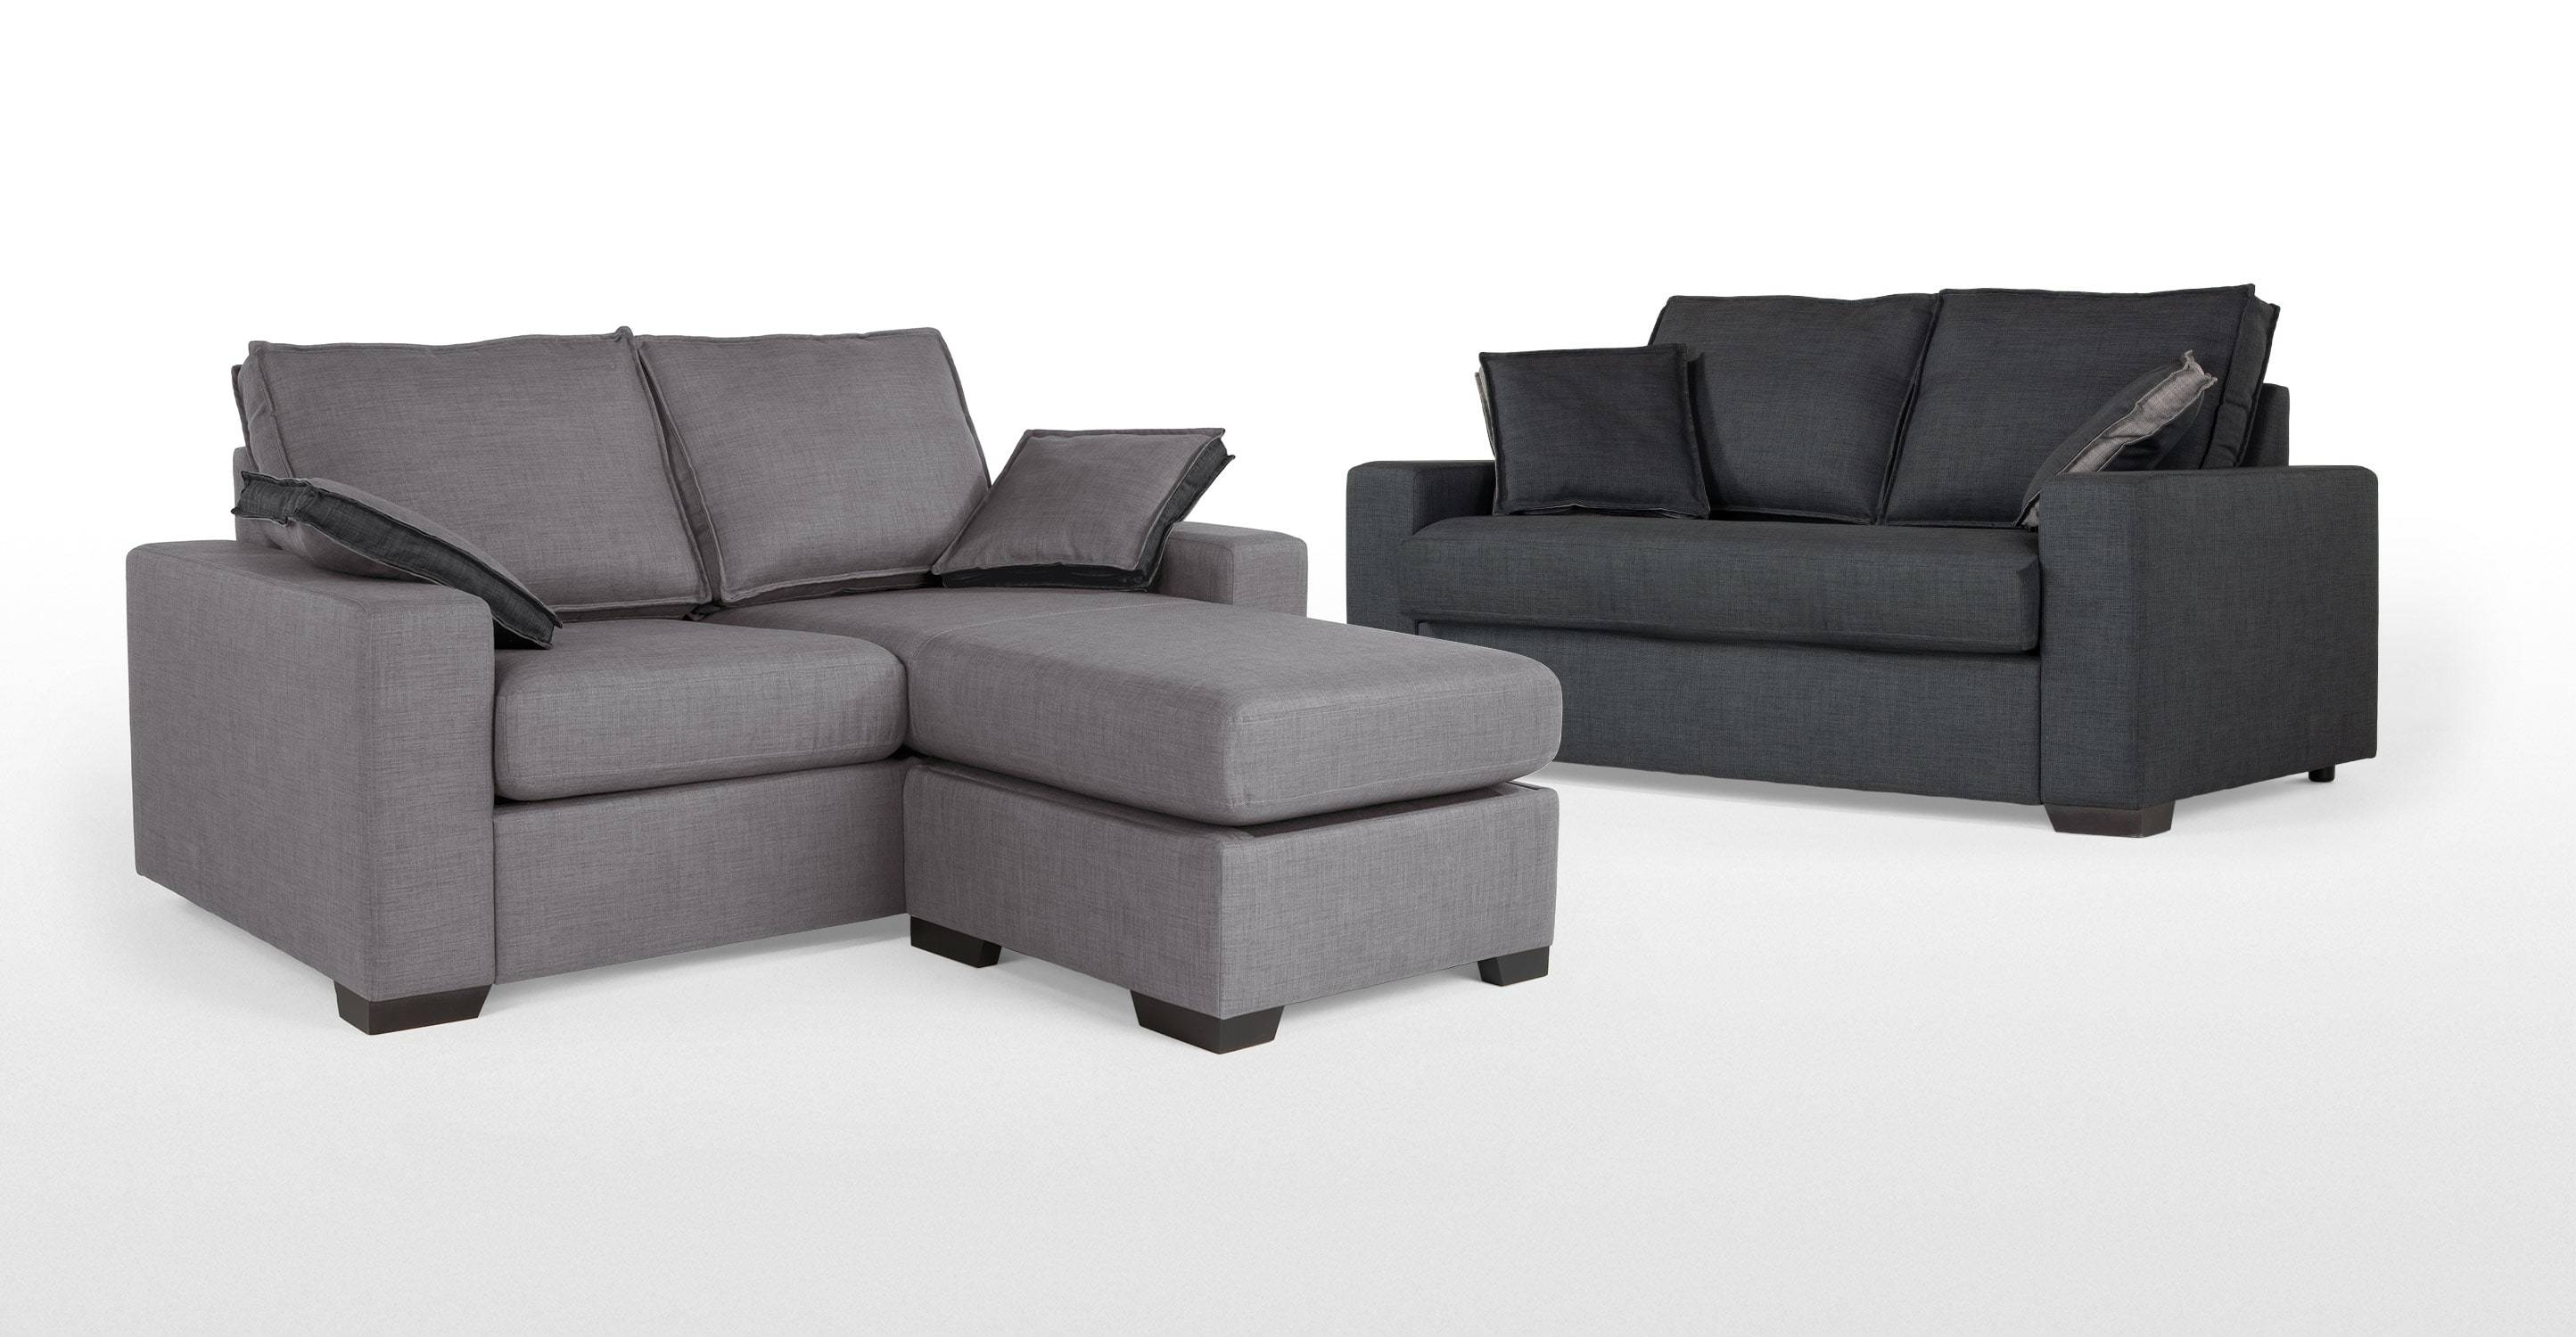 Sofas: Classic Meets Contemporary Chaise Sofa Bed For Ideal Living with Sofa Beds With Chaise Lounge (Image 13 of 15)